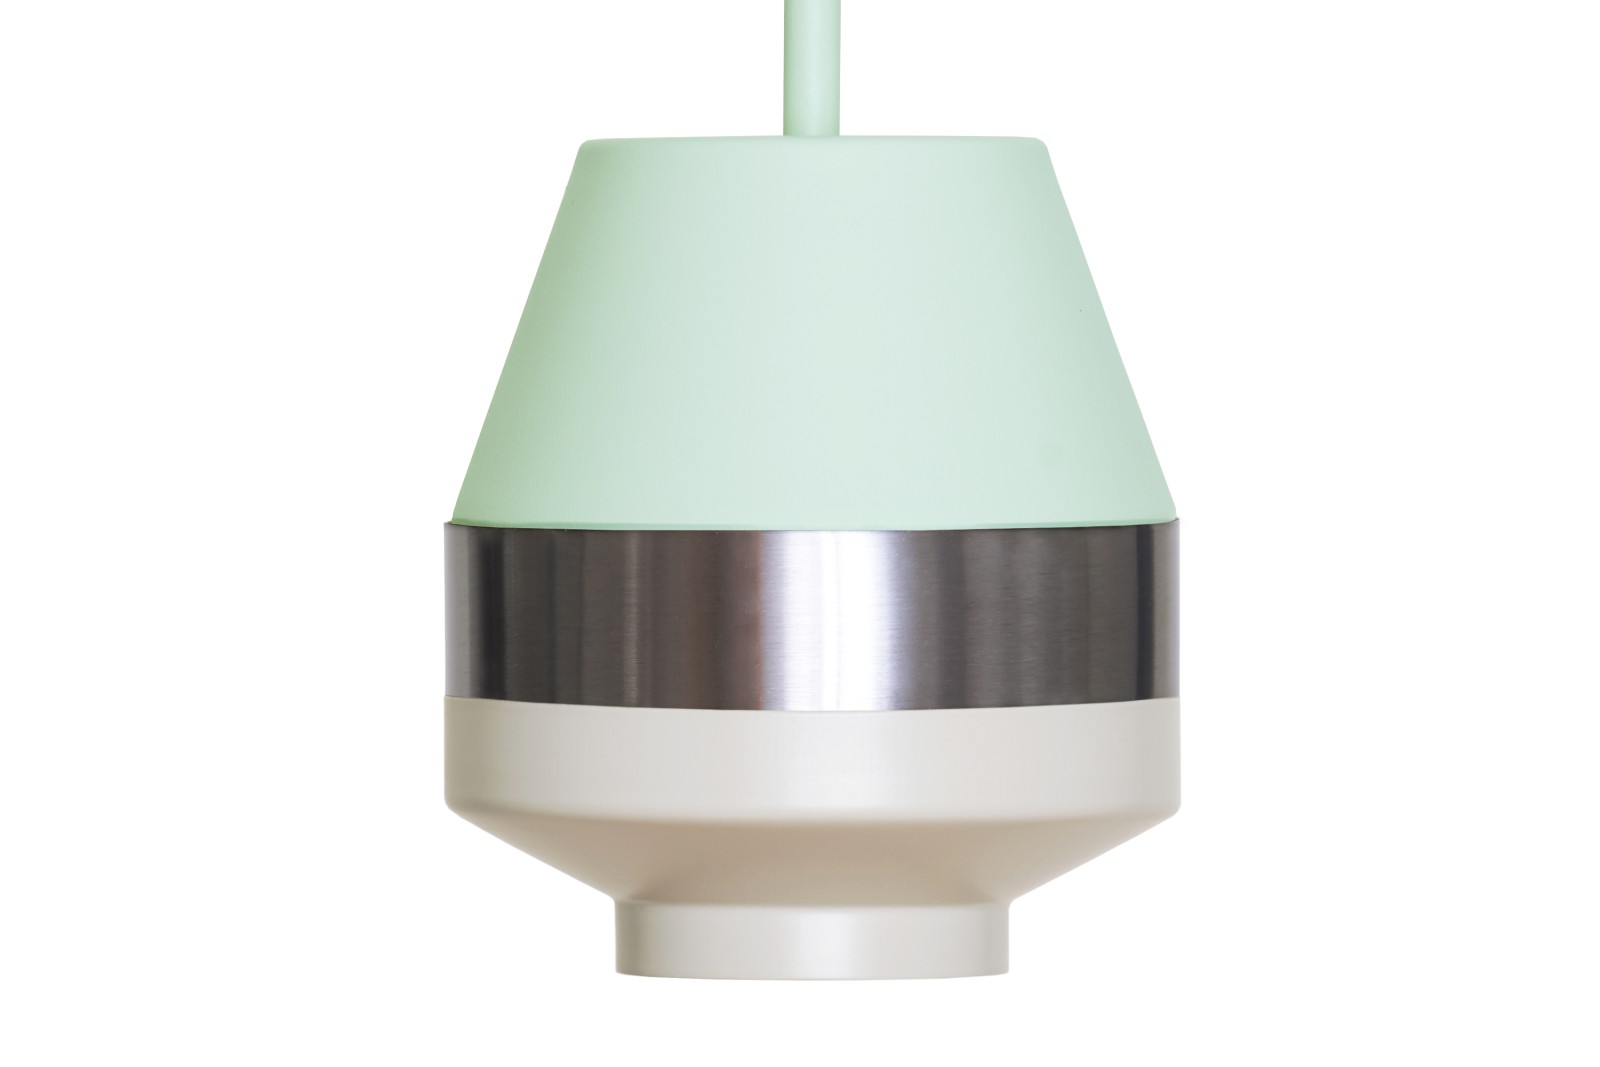 Pran Pendant Light 258-A Mint, Silver & White